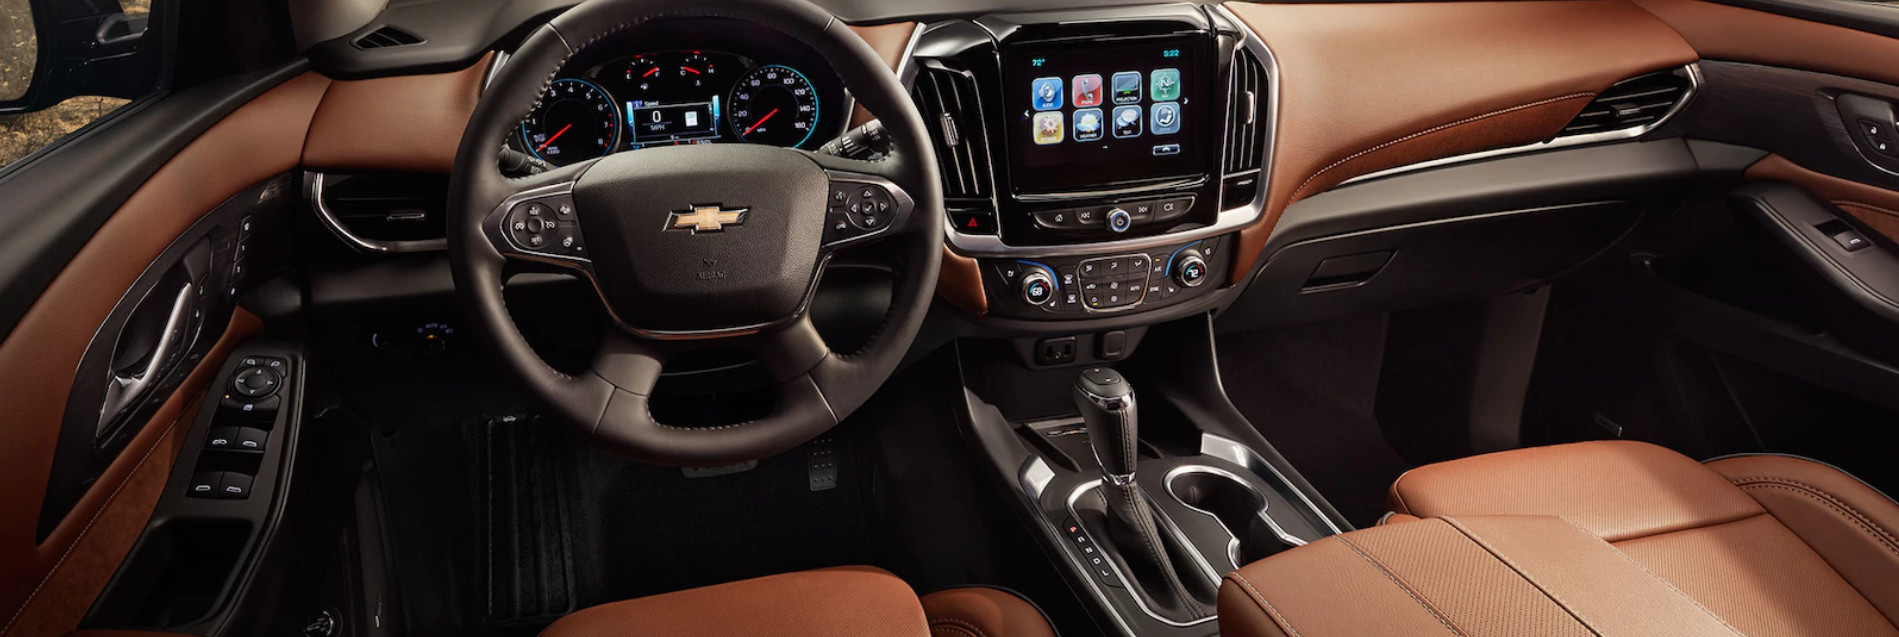 Interior of the 2018 Traverse